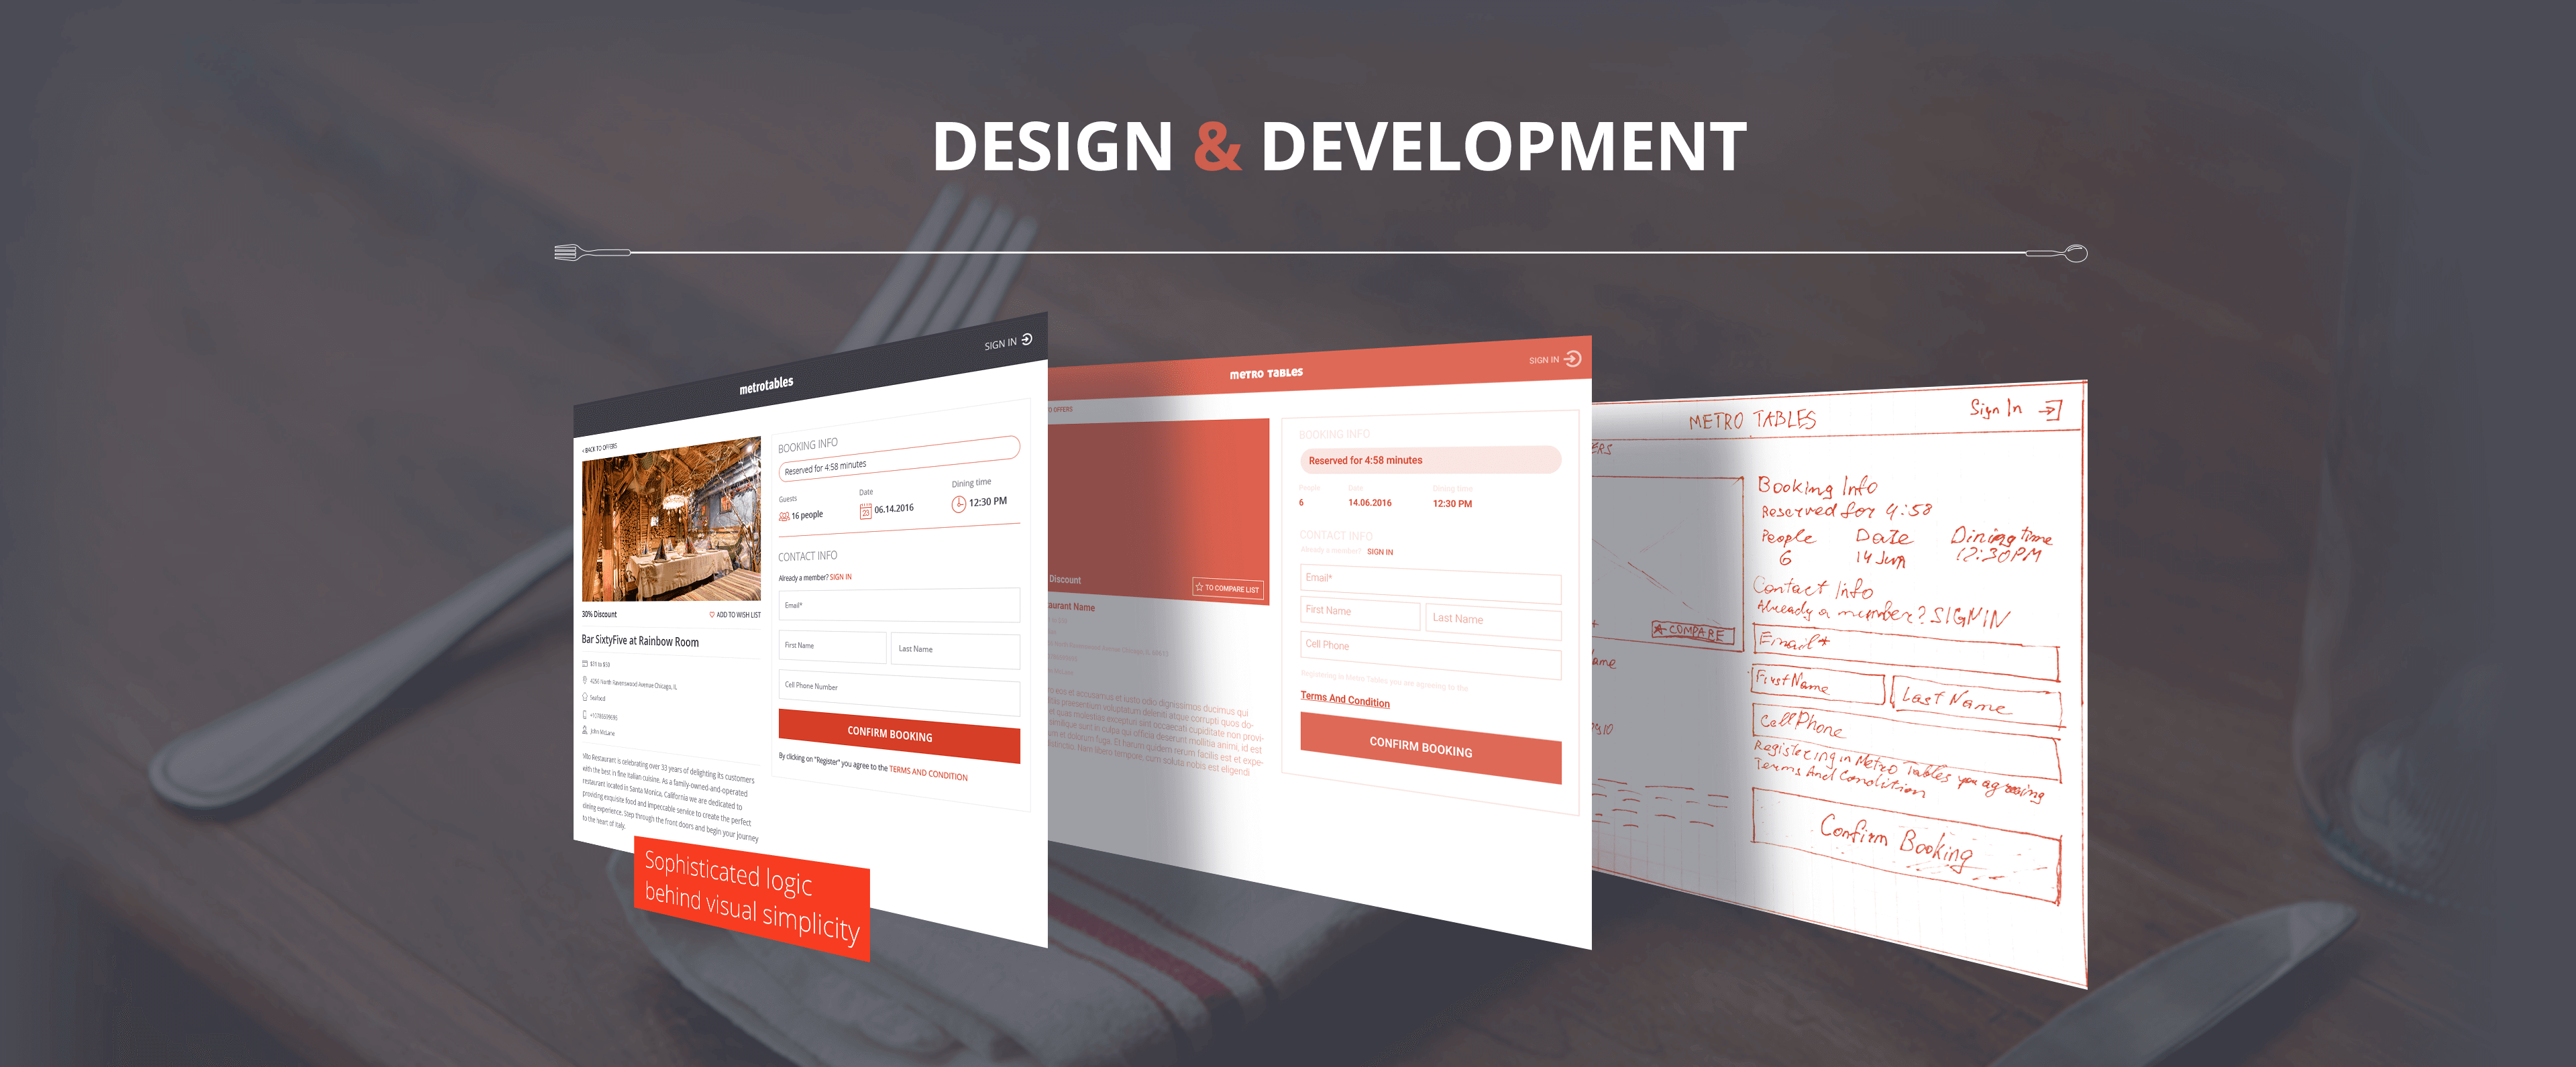 Full-cycle product development from scratch